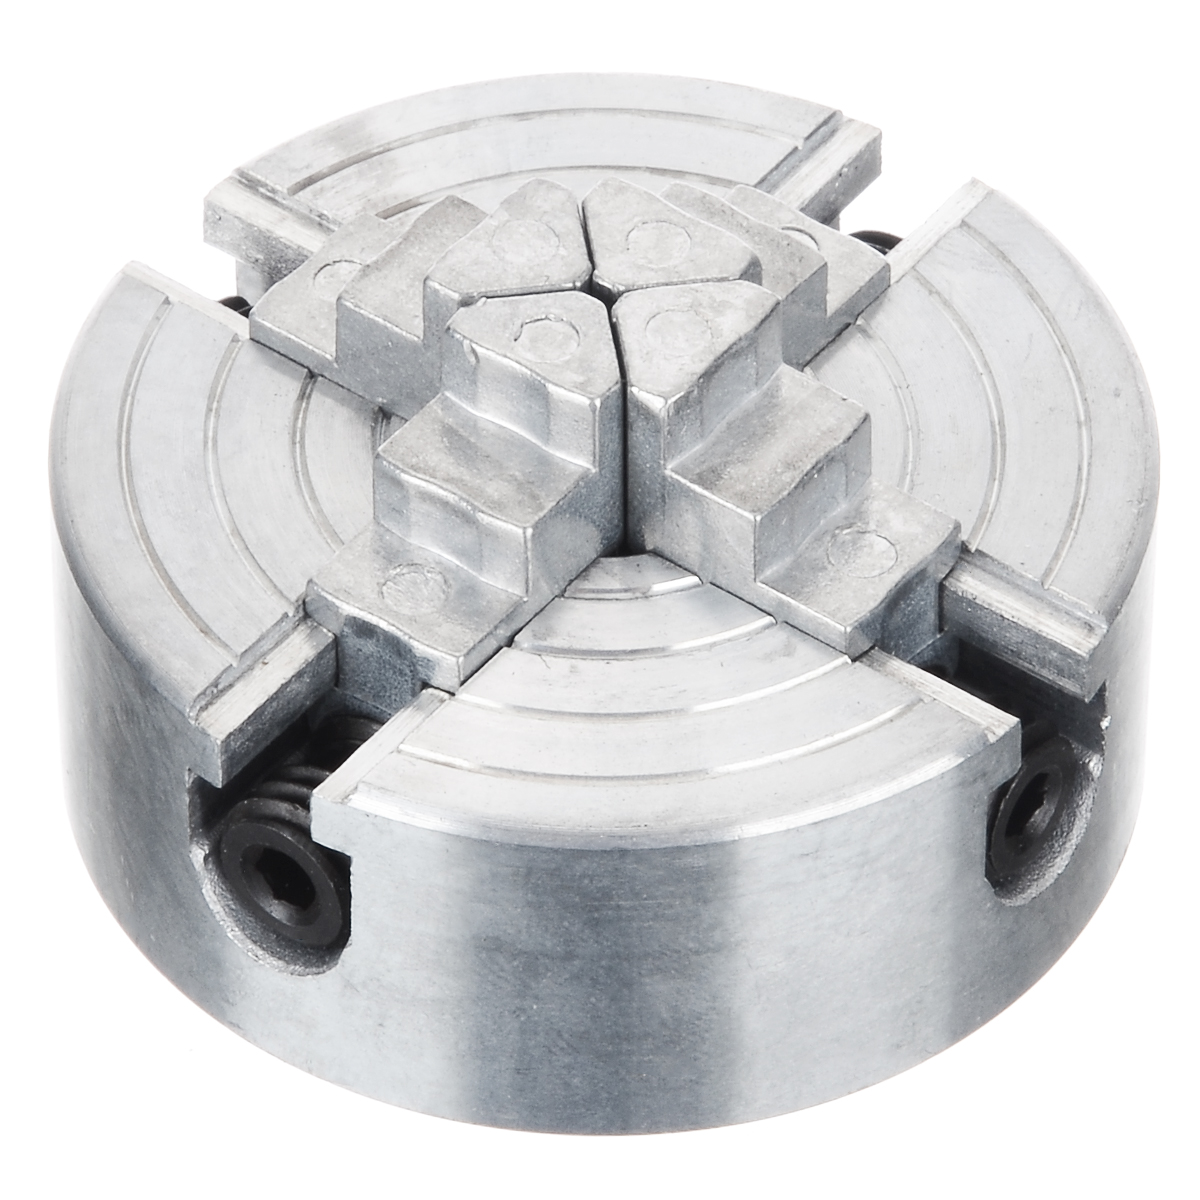 1Pcs Z011A Mini Collet Metal 4-Jaw Lathe Chuck Clamps 1.8~56mm/12~65mm M12 Thread Wood Turning Lathe Accessories